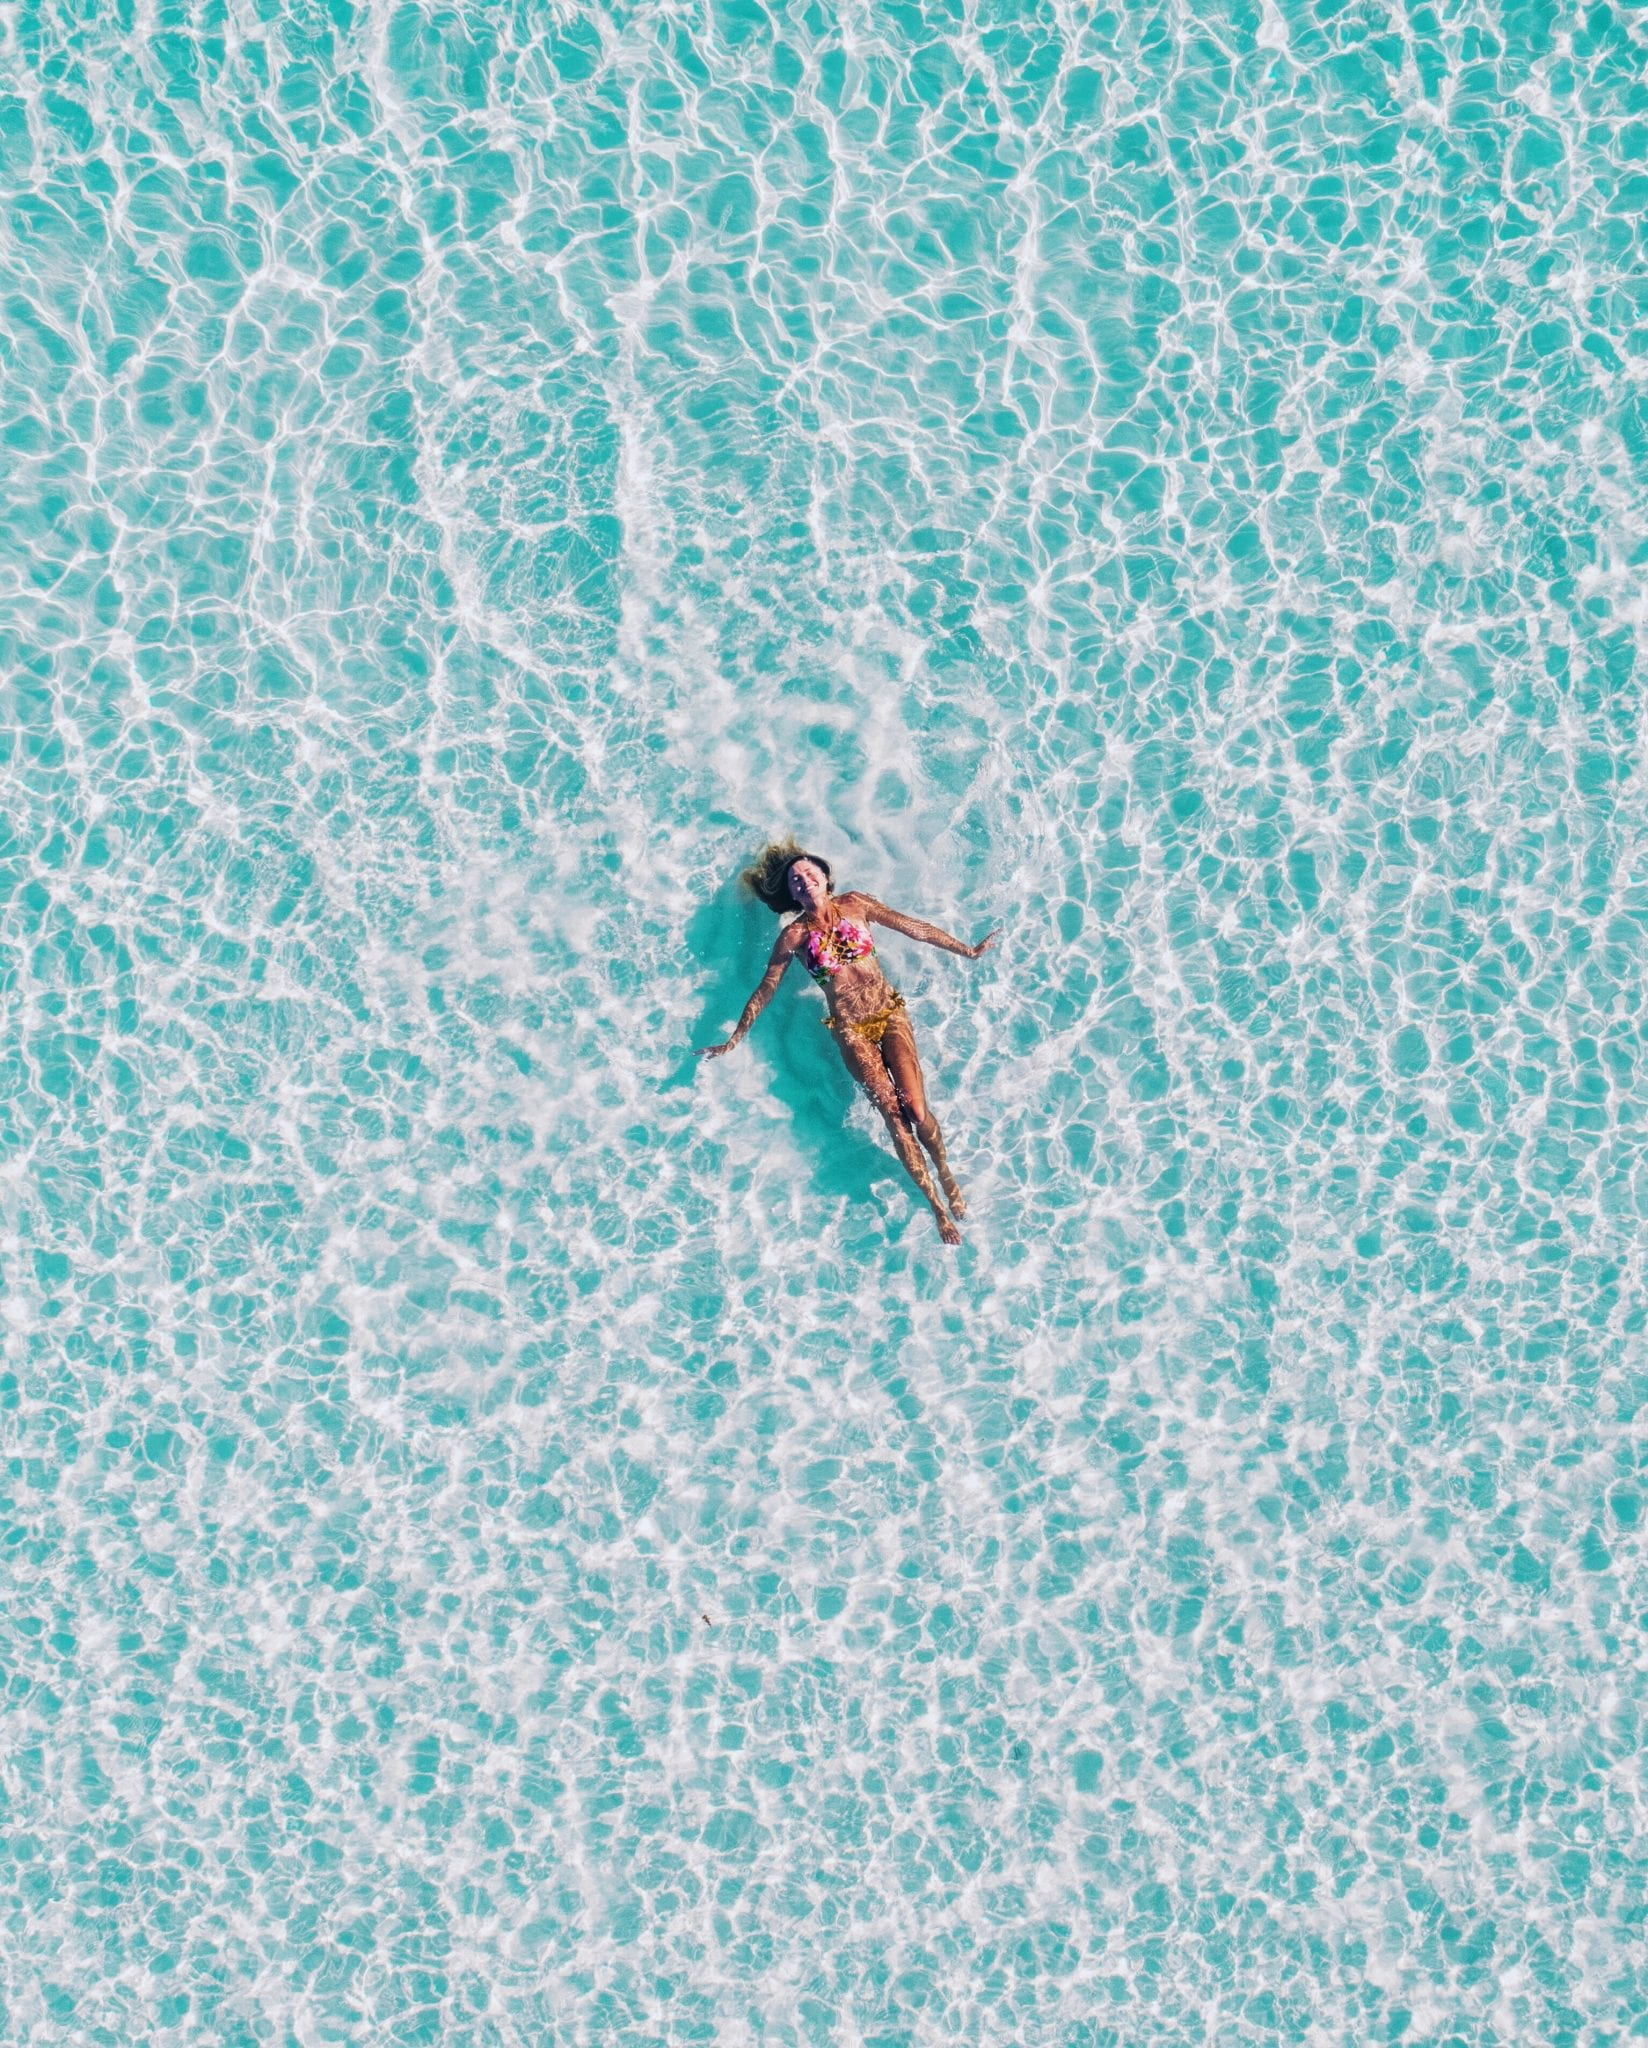 Woman floating in clear shallow water